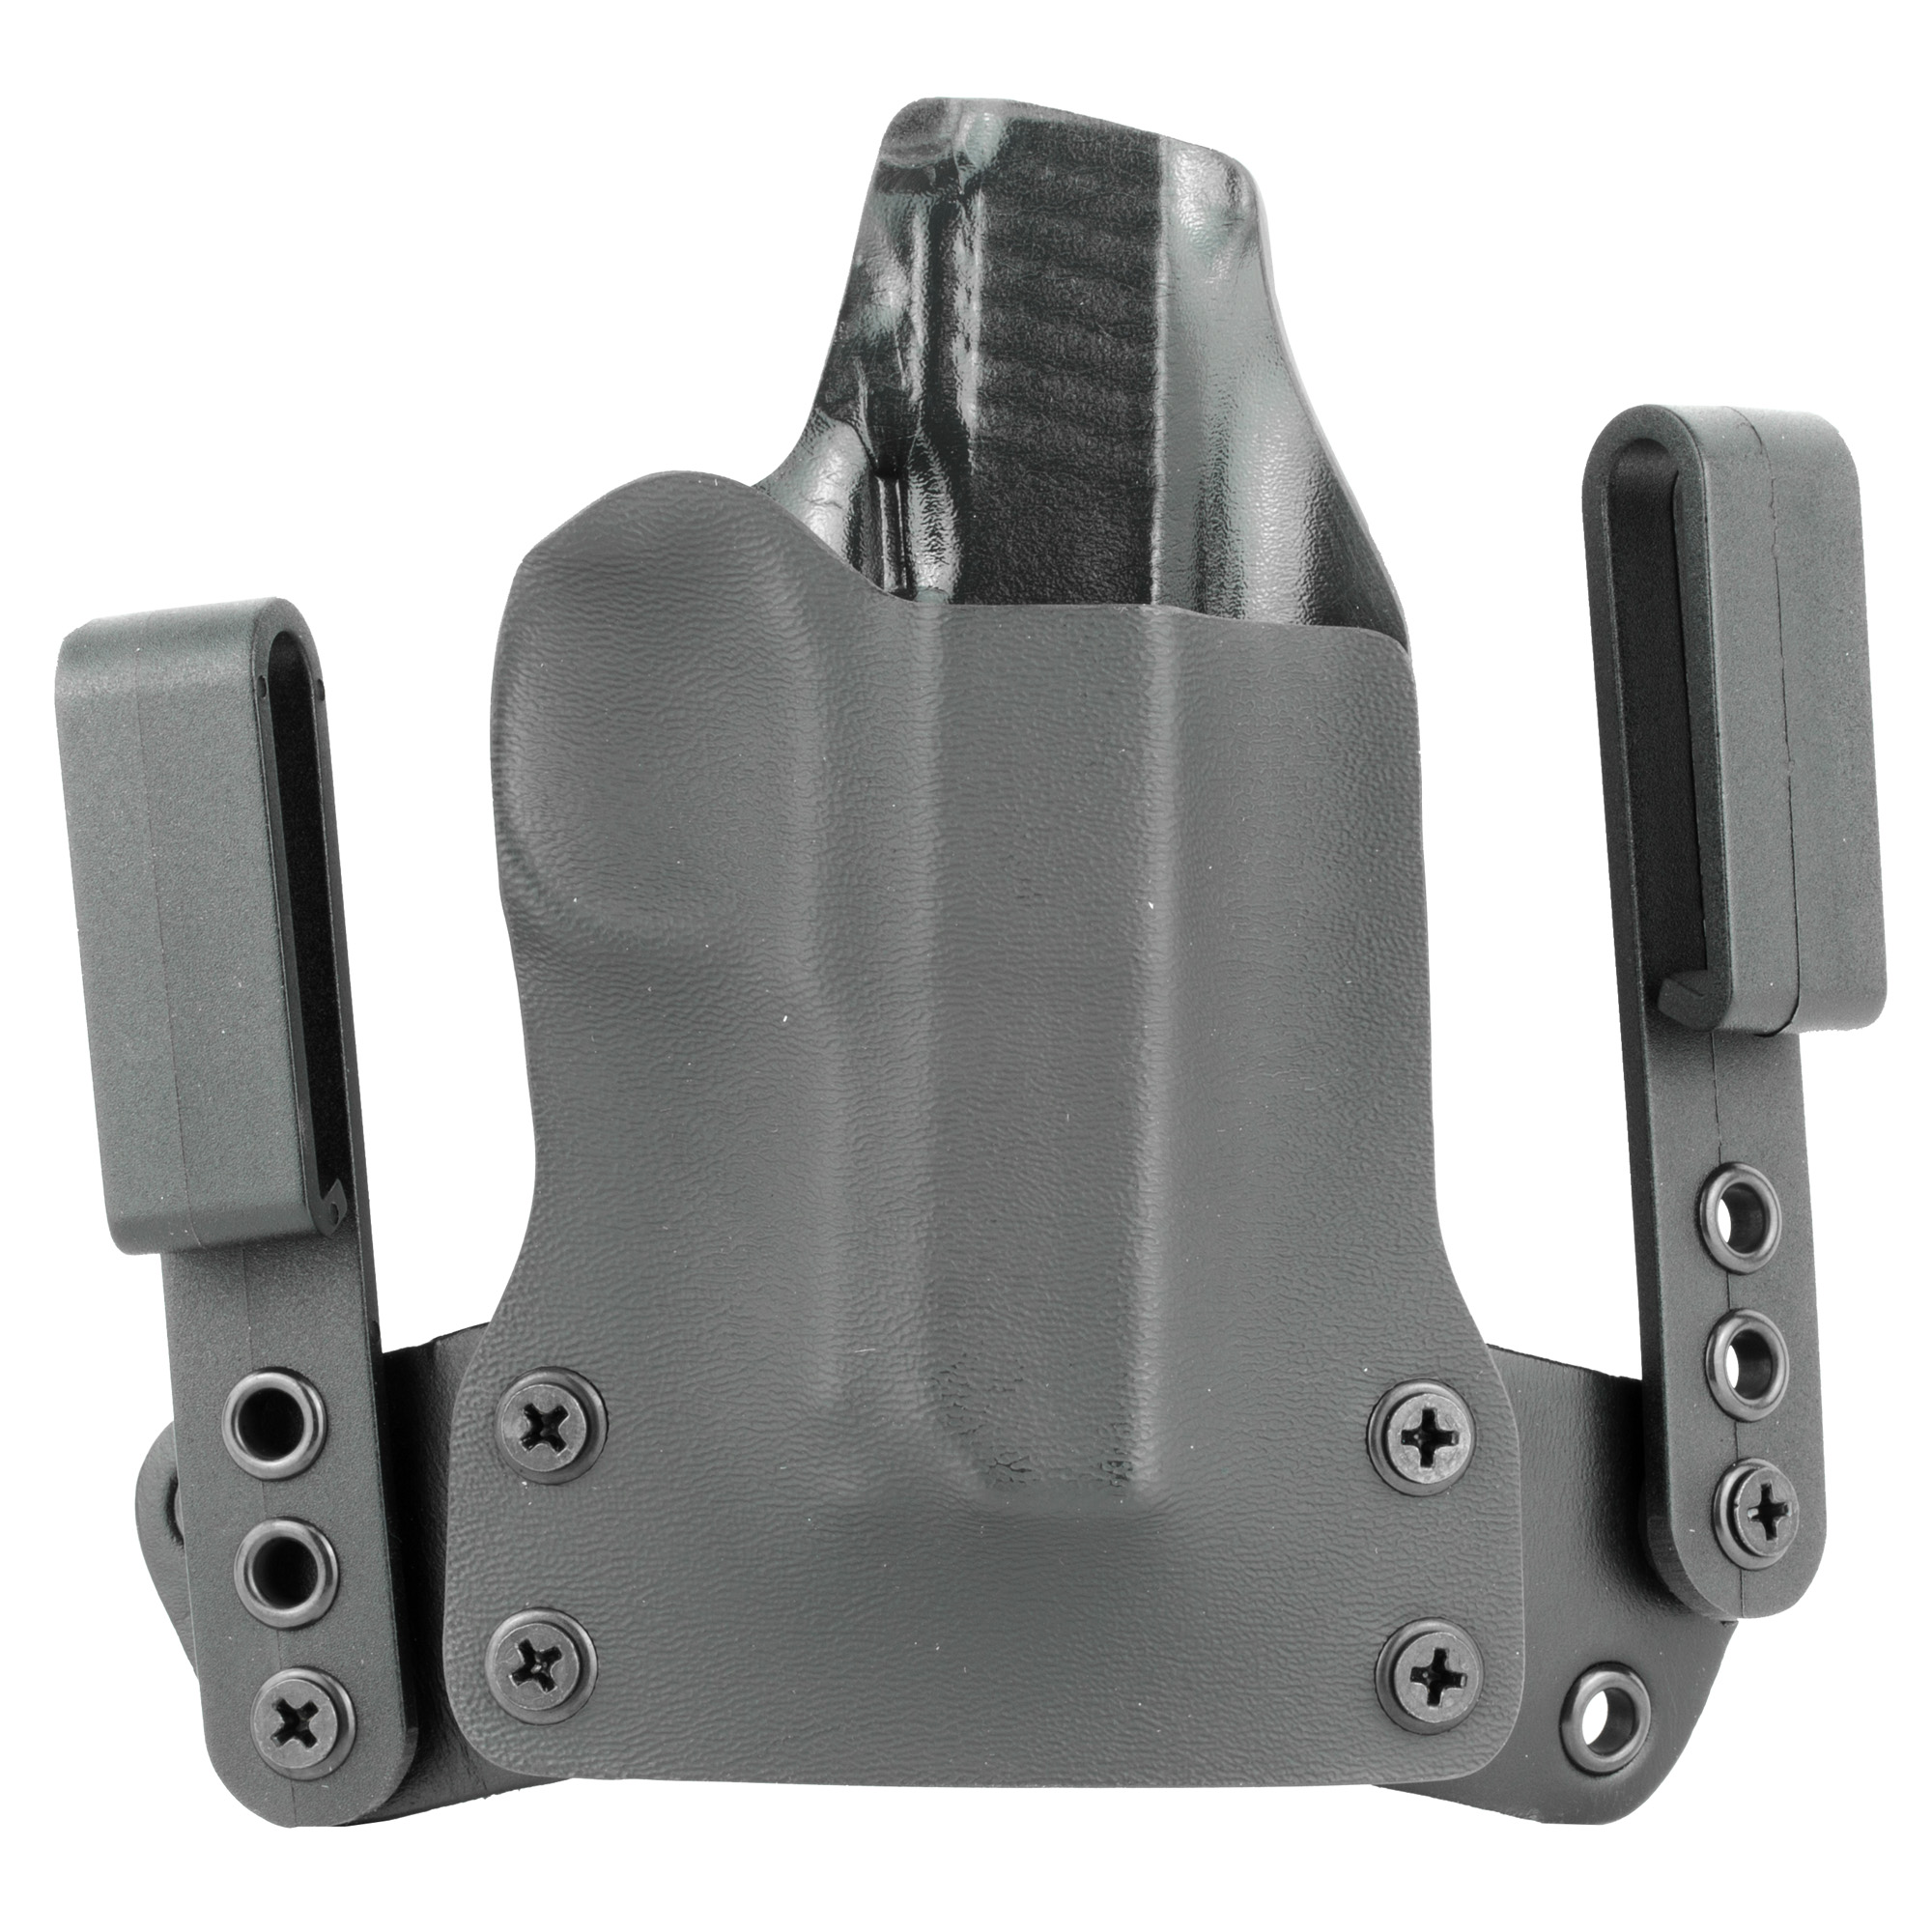 "The Mini WING(TM) by BlackPoint Tactical is designed to be a minimized IWB holster which allows the user to carry comfortably all day long without sacrificing performance or durability. The pairing of KYDEX(R) and leather on this holster provides the functional benefits of a KYDEX(R) holster while providing the flexibility and comfort of a leather holster. The KYDEX(R) reliably retains your pistol without a break in or wear out period and it prevents the holster from collapsing when your pistol is drawn for easy one handed holstering. The ""mini wings"" give the holster flexibility to move with your body"" making it comfortable for use all day"" every day. Additionally"" the ""mini wings"" were constructed to provide the user with a variety of different configurations for IWB carry with adjustments available to the cant and ride height of the holster."